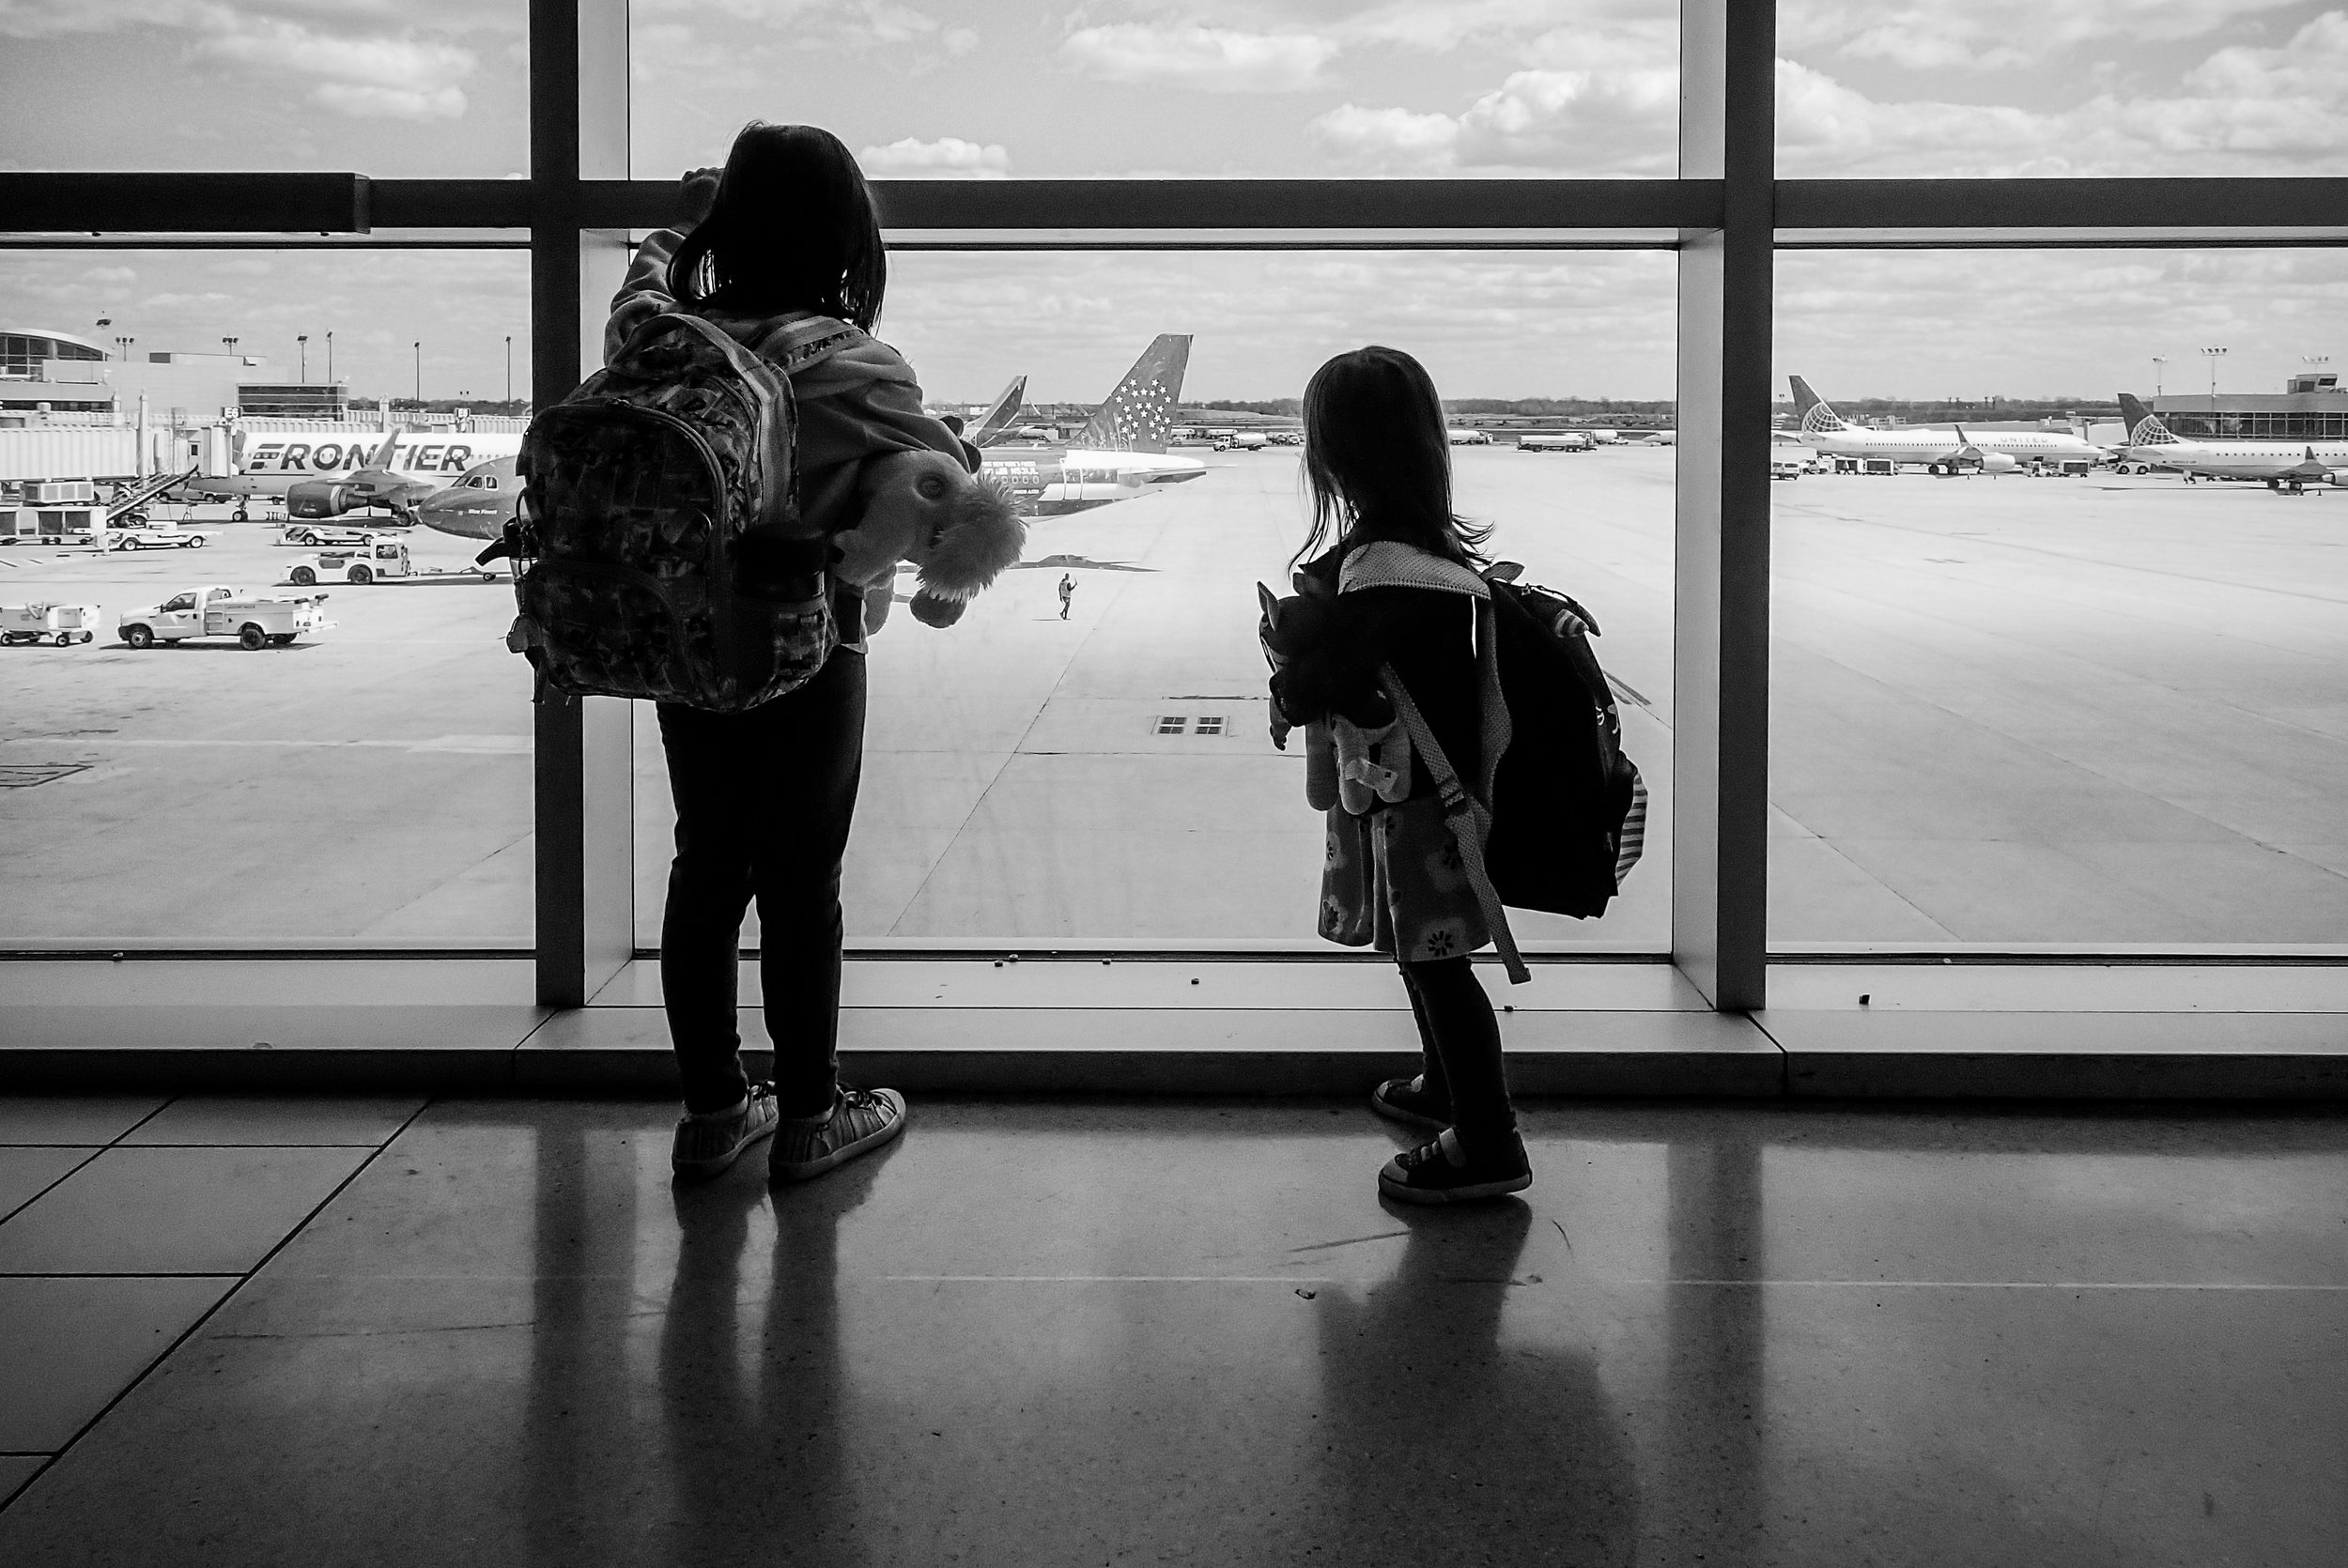 Young girls looking out the window while waiting for their flight at Philadelphia International Airport.